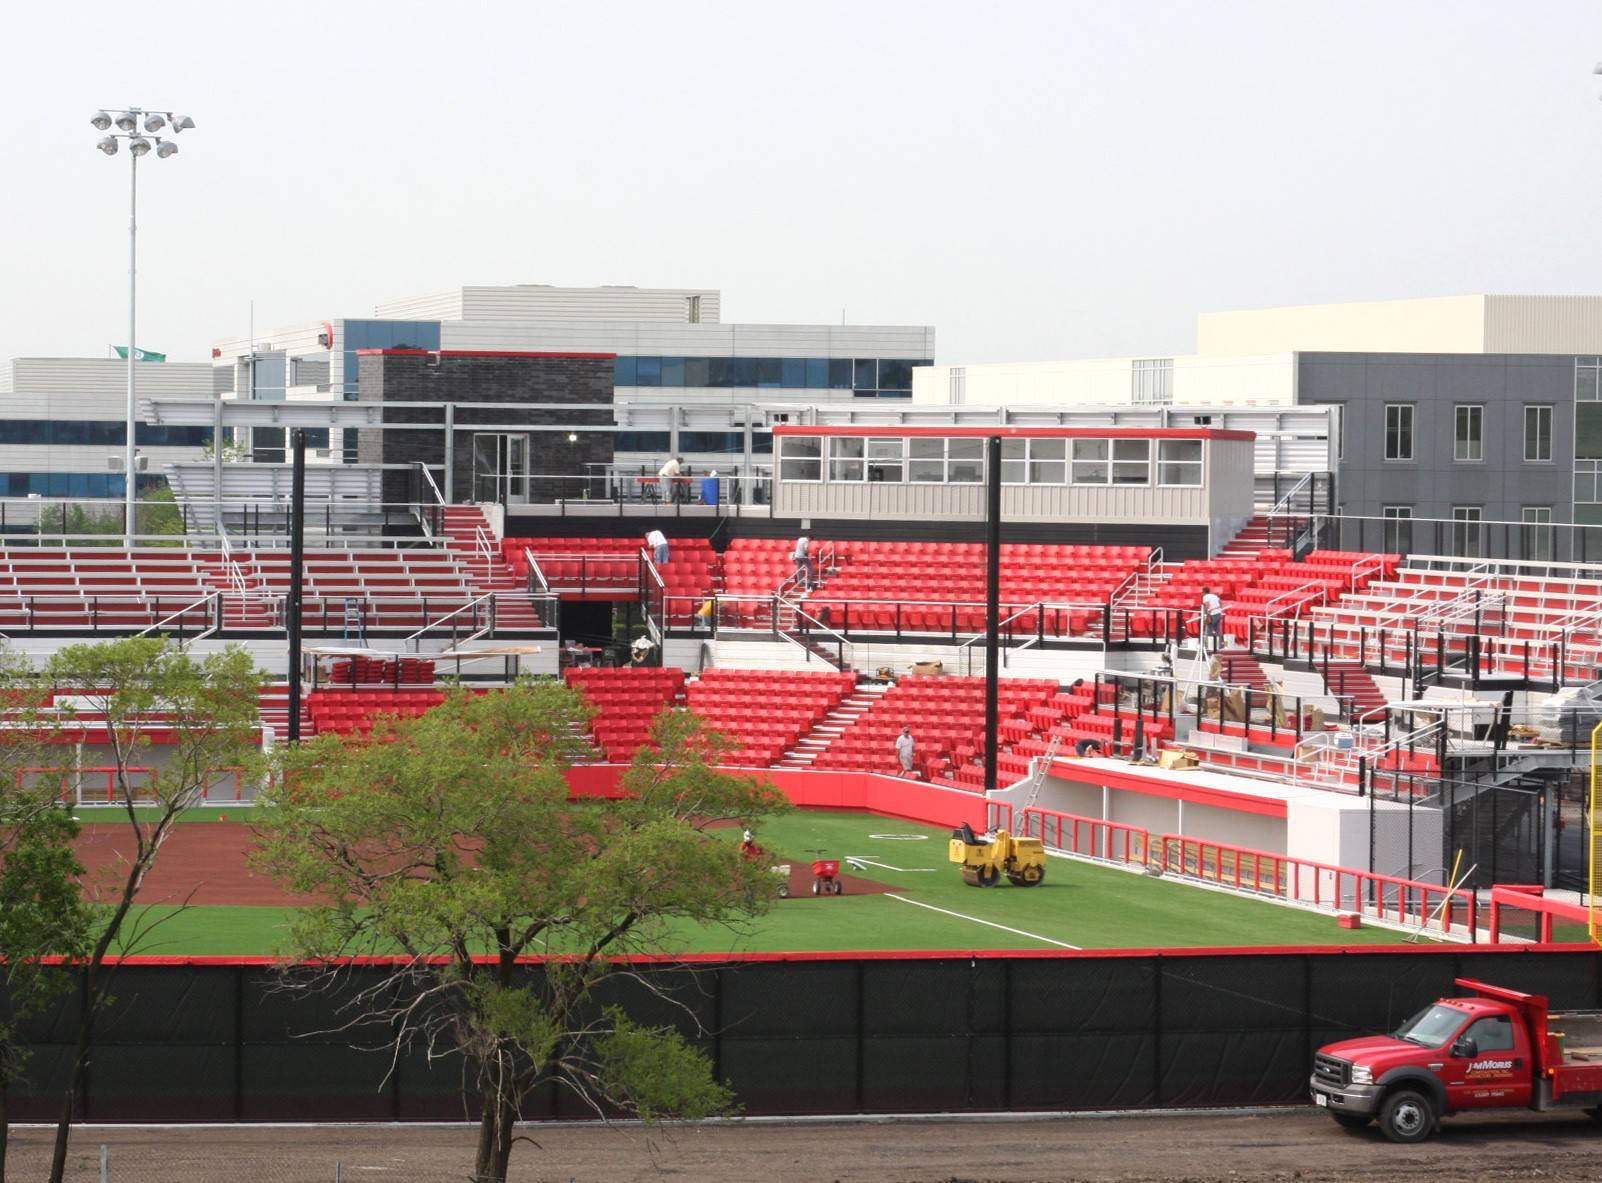 Rosemont built a $6 million softball stadium for the Chicago Bandits in 2011, but is now taking over ownership of the team itself.